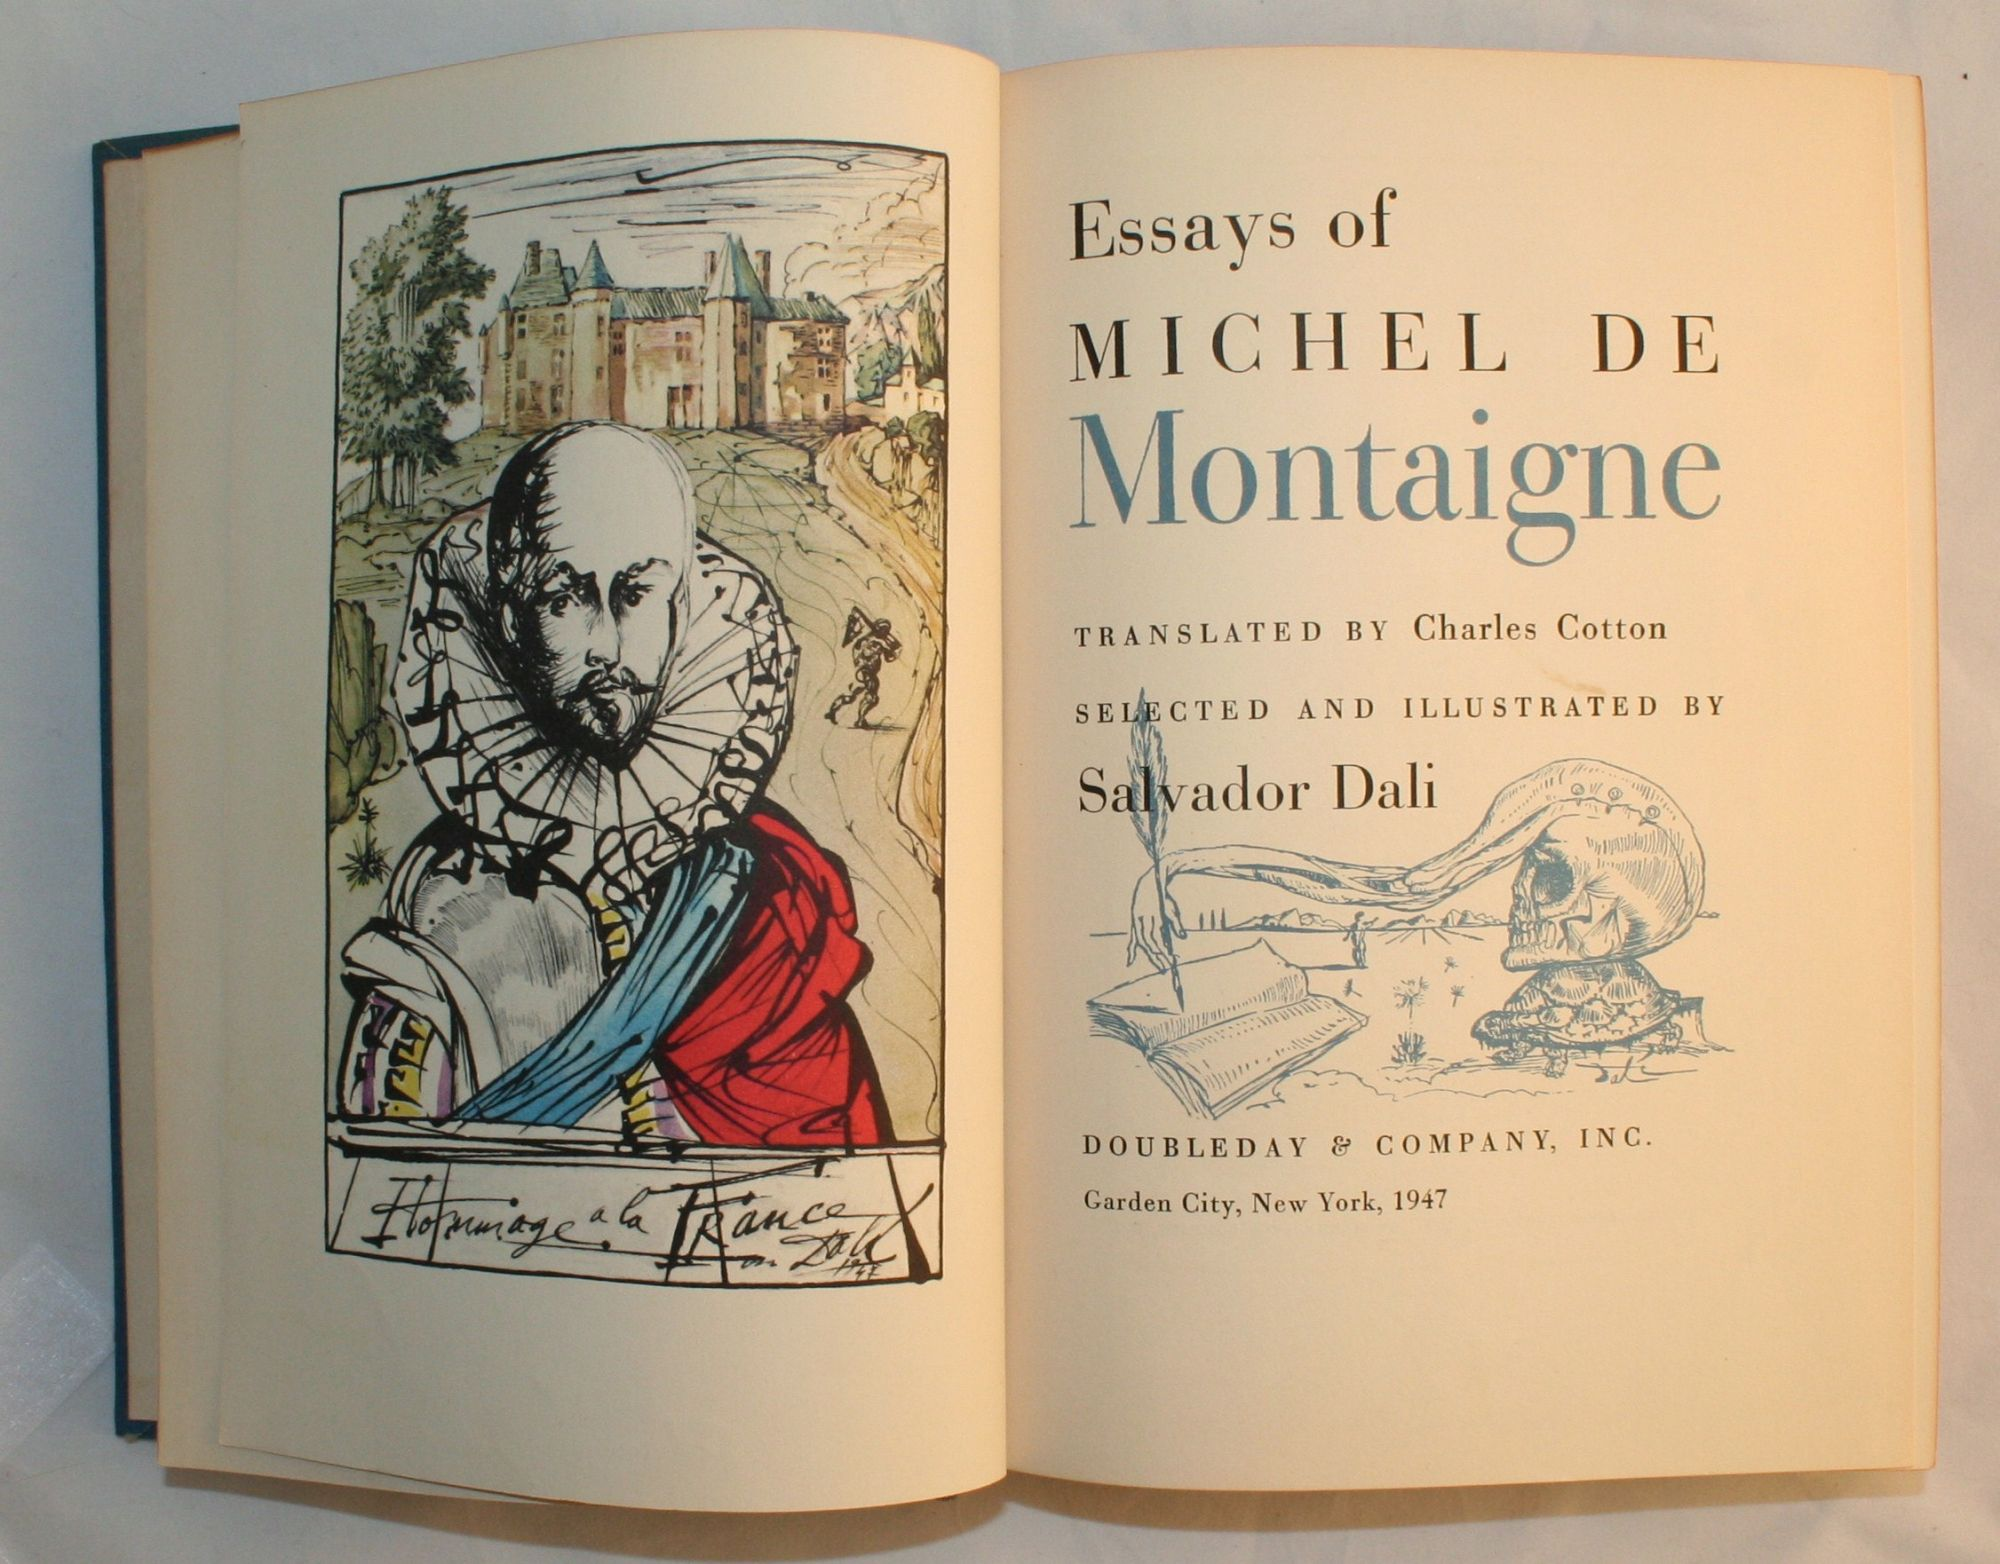 essays of michel de montaigne illustrated by salvador dali 1947 Buy essays of michel de montaigne [translated by charles cotton] selected and illustrated by salvador dali by michel de (1533-1592) dal, salvador (1904-1989) montaigne (isbn: ) from.